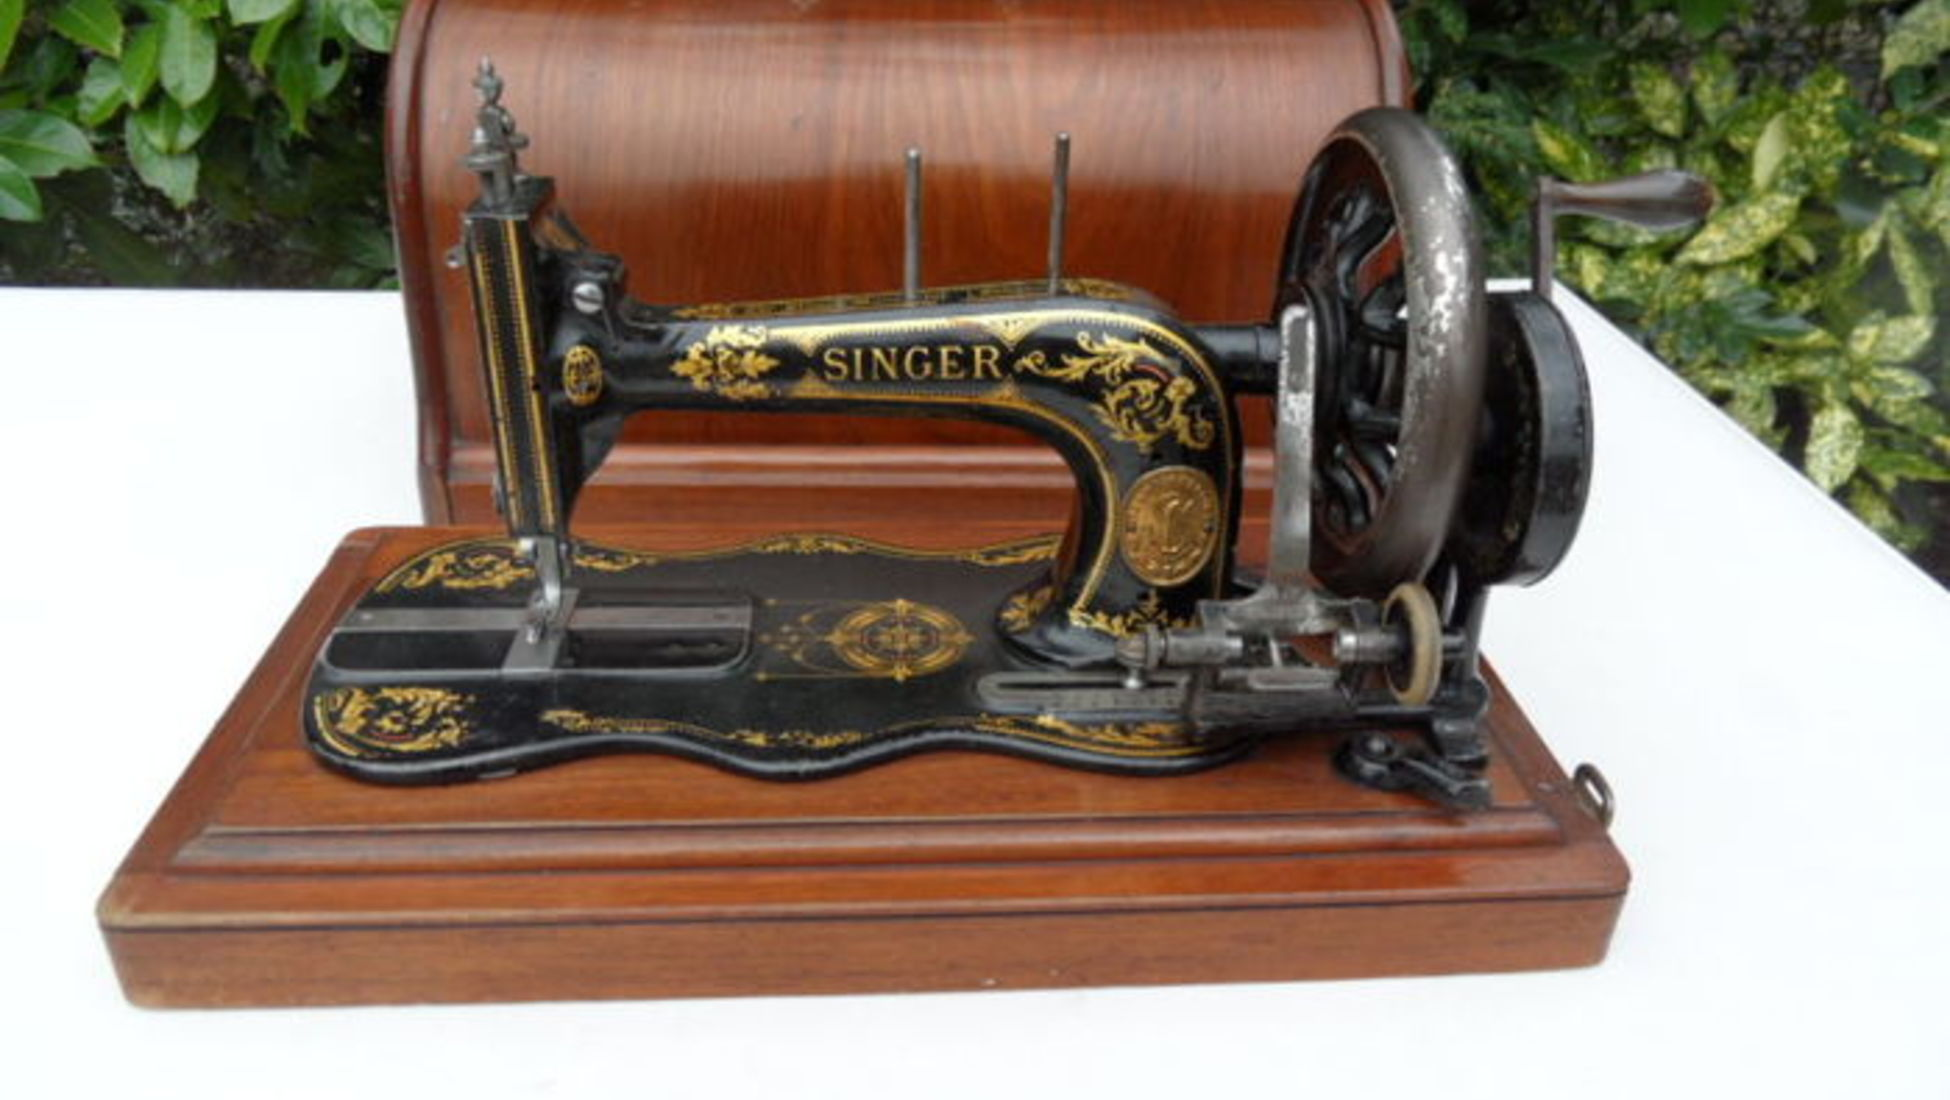 New home sewing machine dating 5